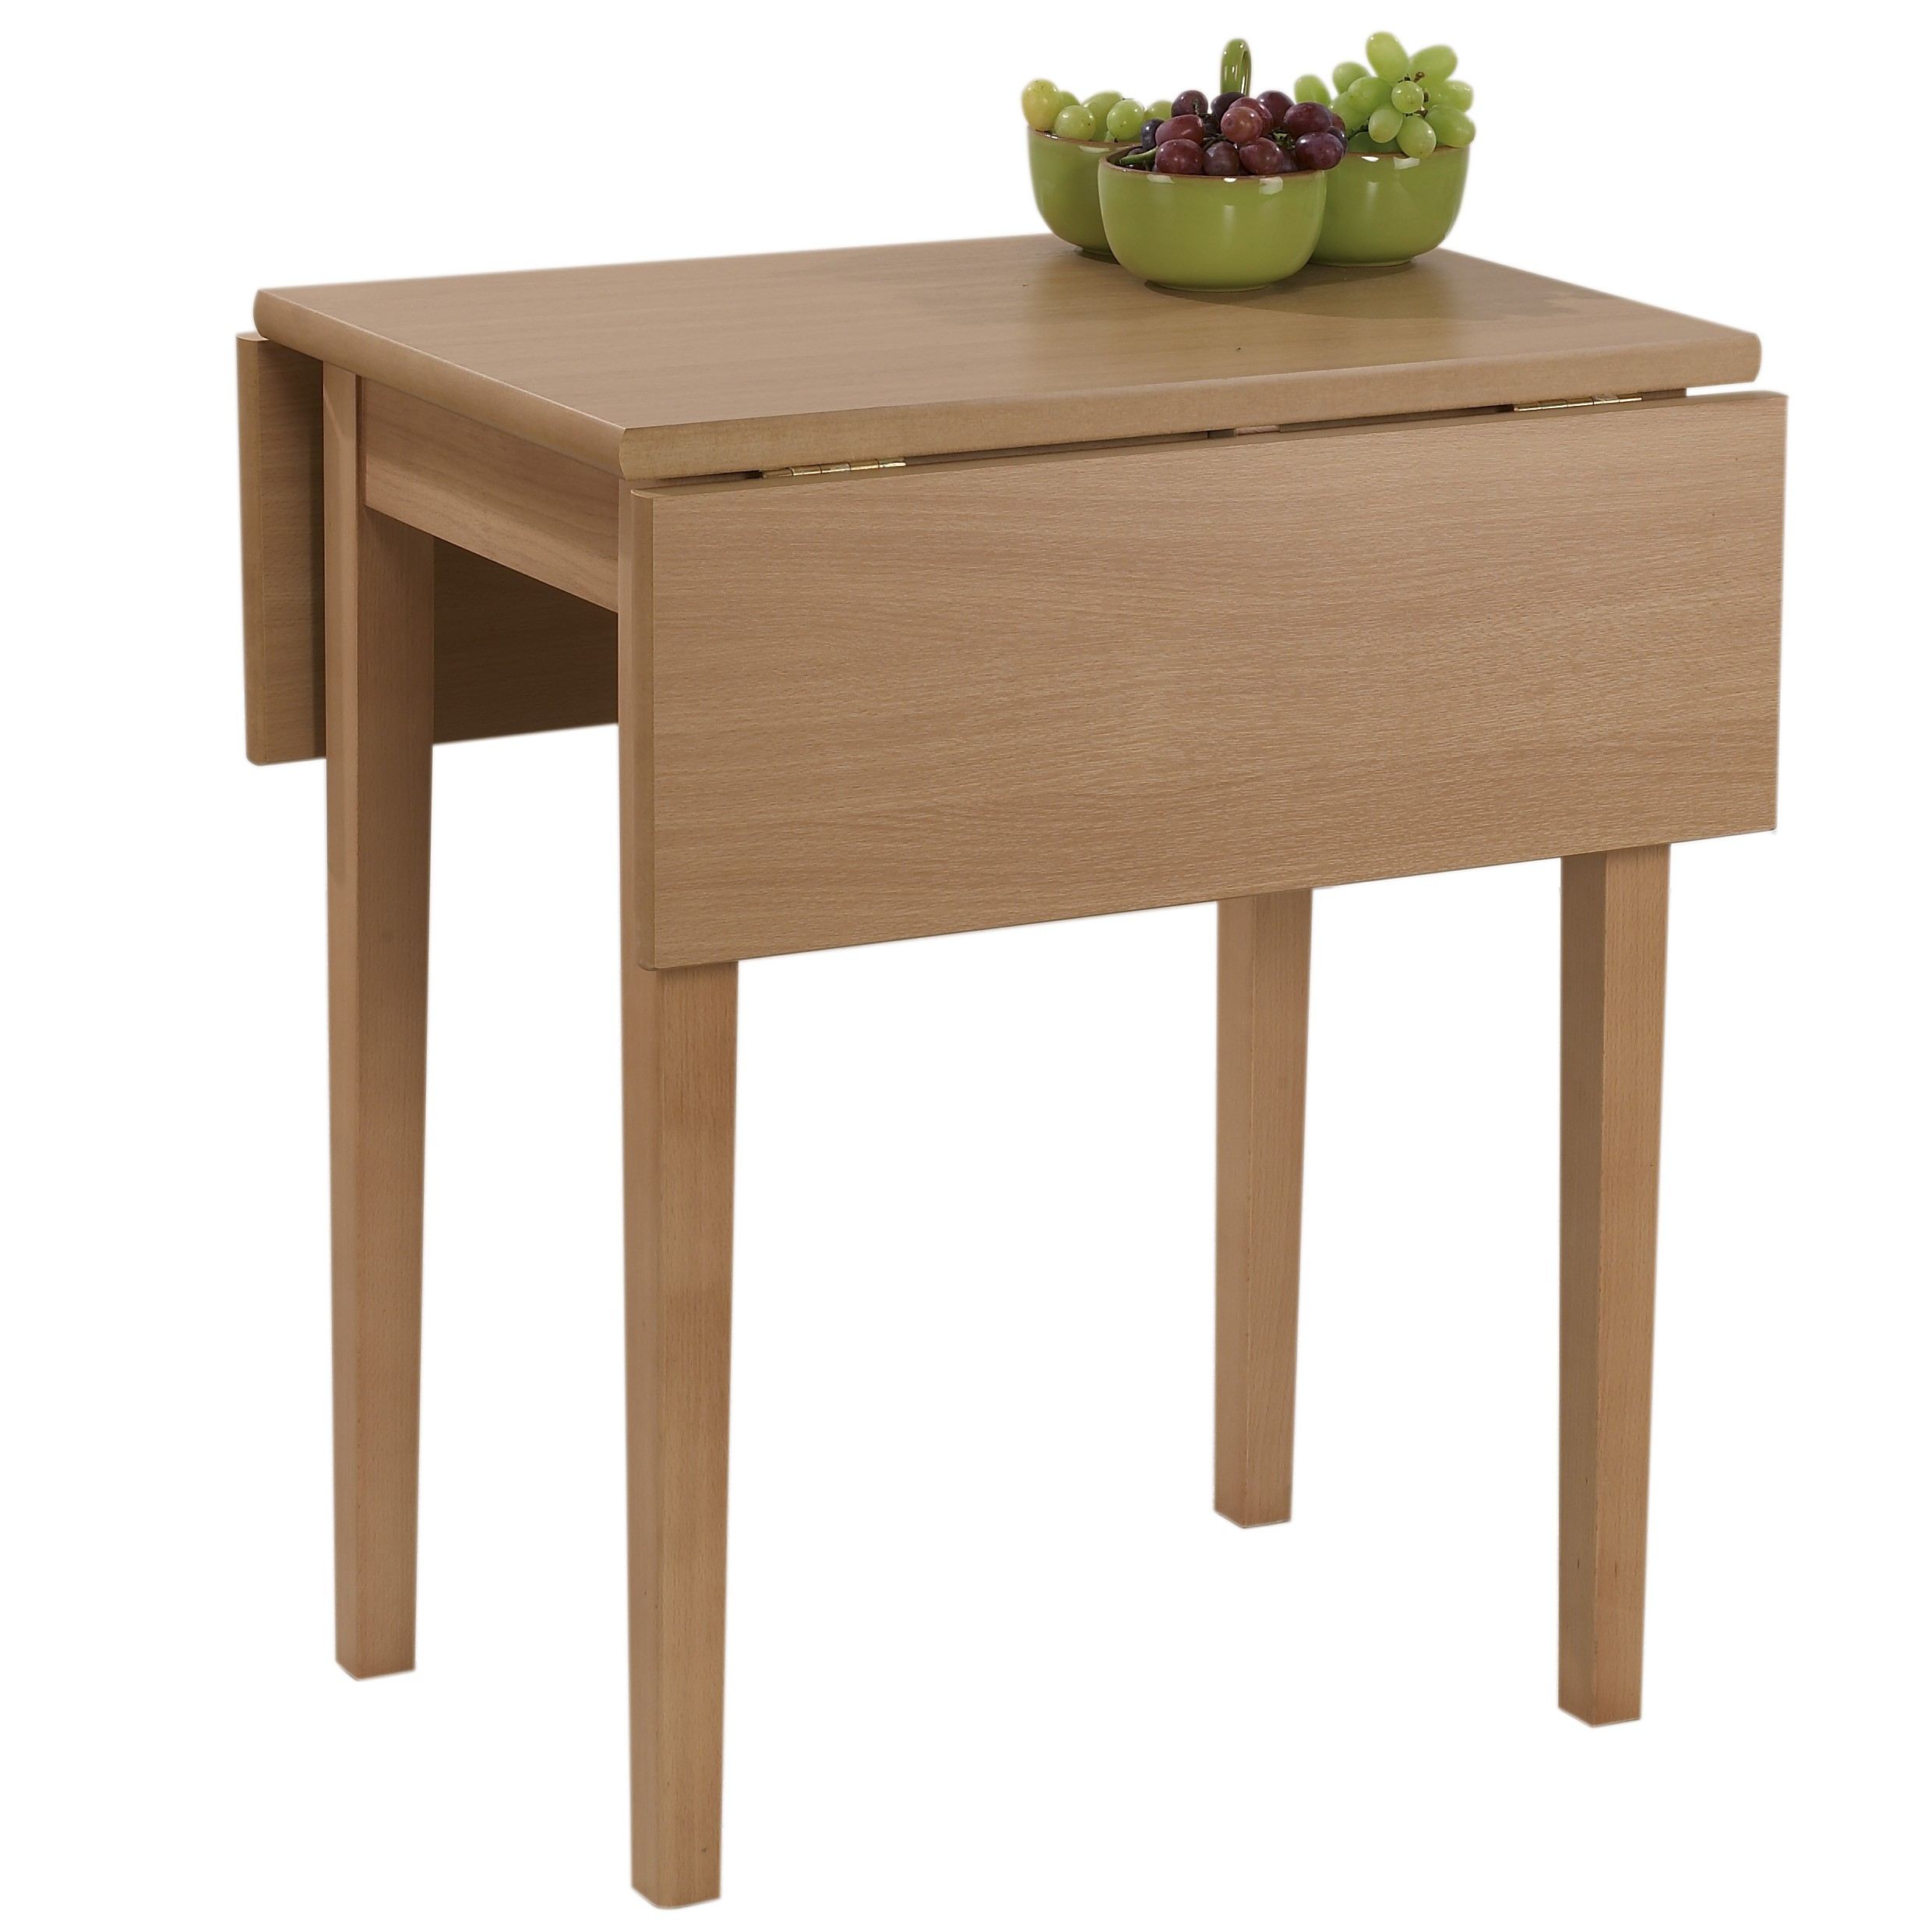 Ikea Kitchen Tables For Small Spaces On Vaporbullflcom